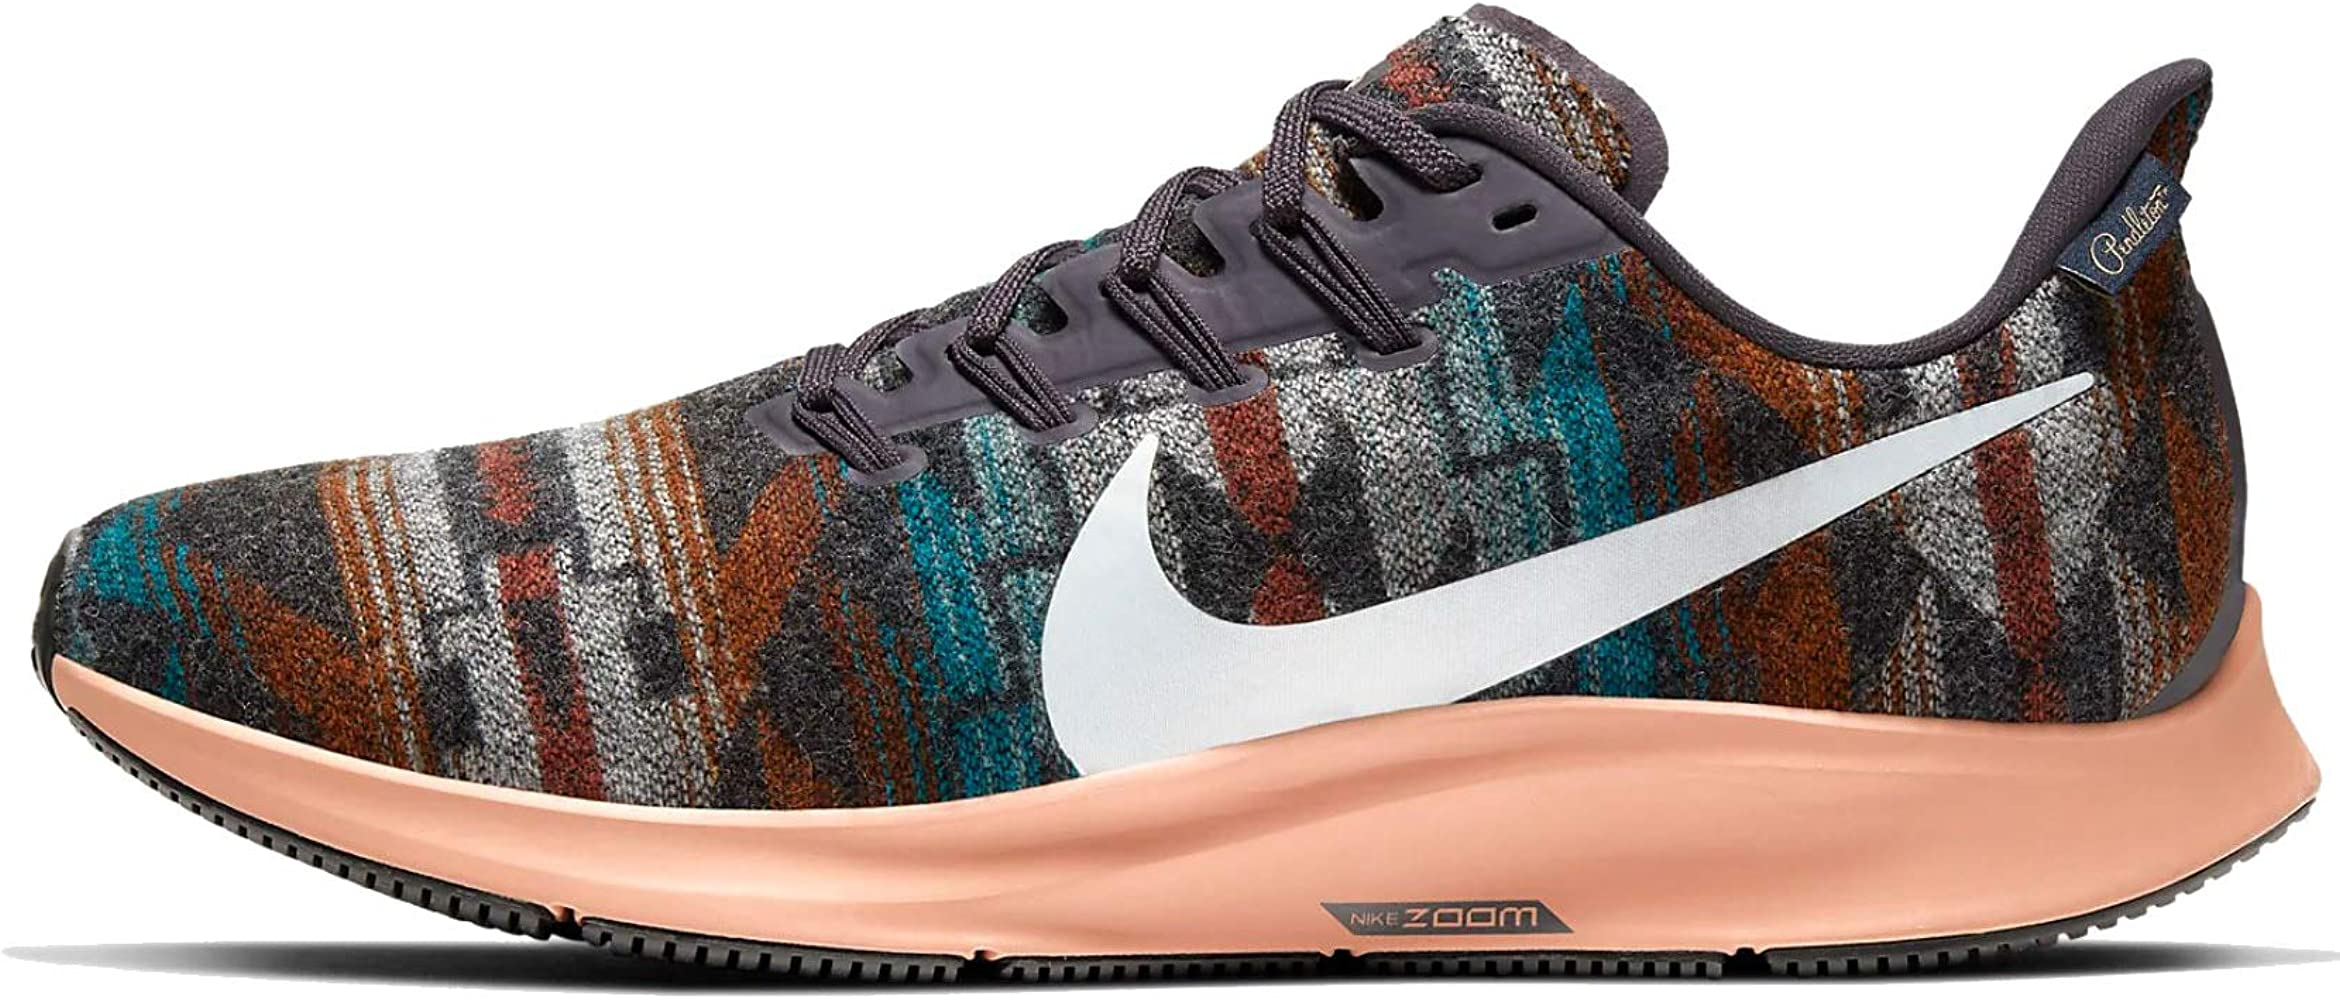 Nike Air Zoom Pegasus 36 N7 Mens Cq7695-900 Size 11.5: Amazon.es ...